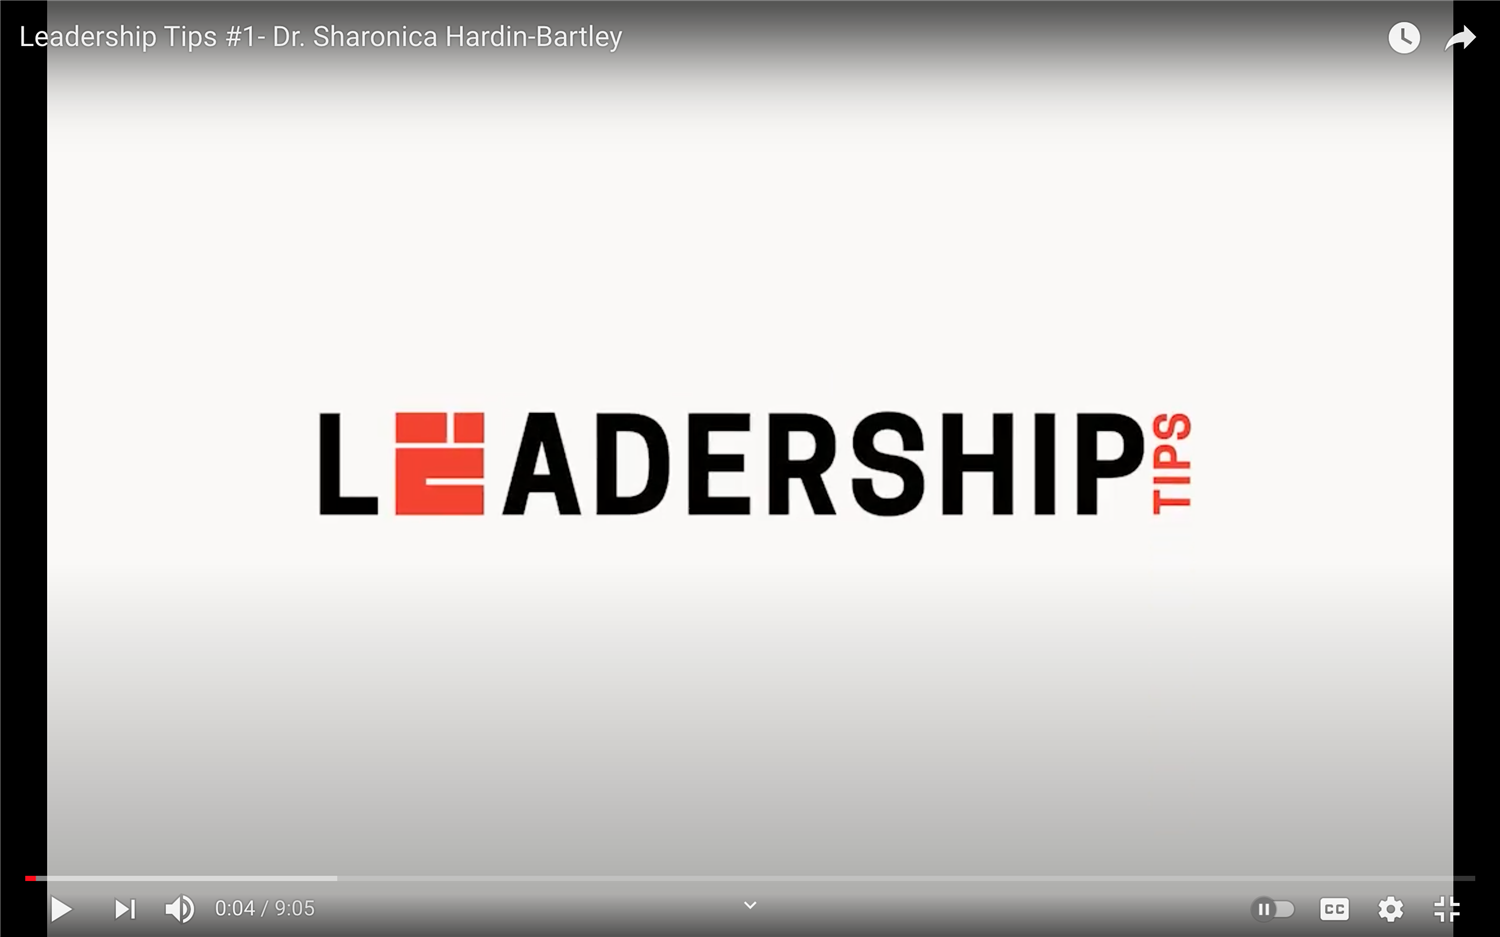 Issues in Education: Leadership Tips #1 - 011221